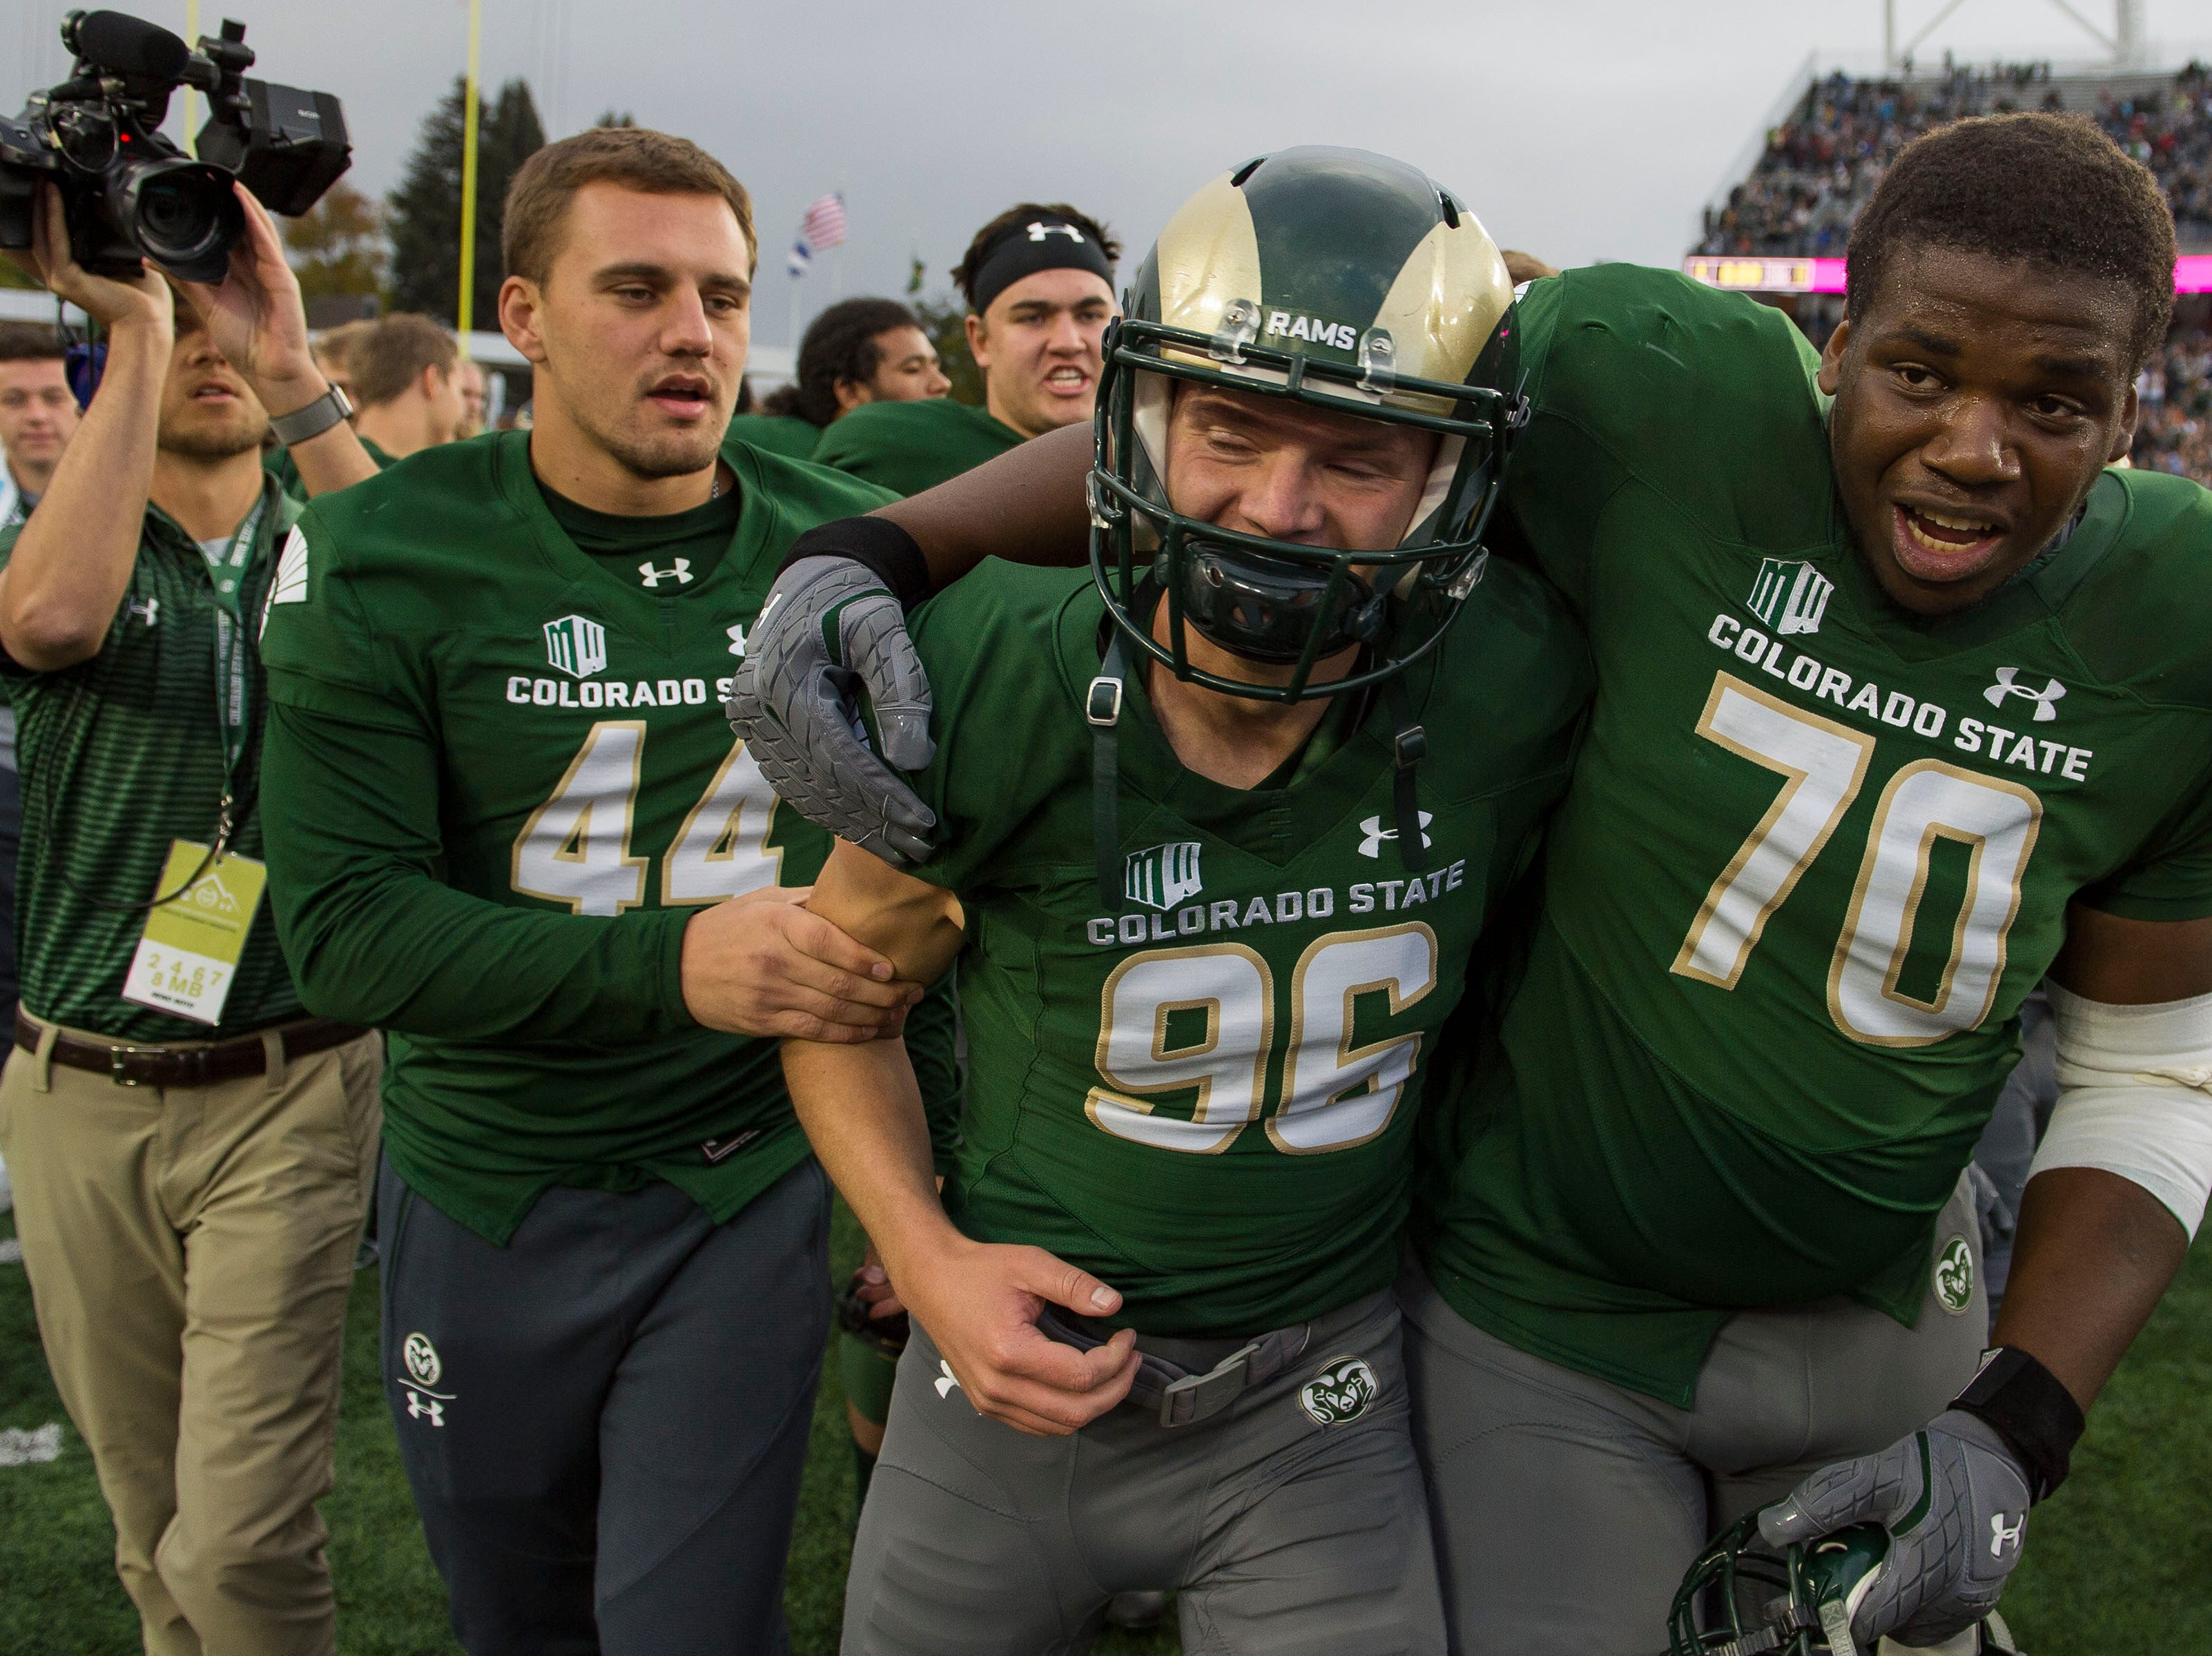 Colorado State University senior kicker Wyatt Bryan (96) is greeted by teammates Joctavis Phillips (70) and Max McDonald (44) after hitting a game-winning field goal against New Mexico on Saturday, Oct. 13, 2018, at Canvas Stadium in Fort Collins, Colo.